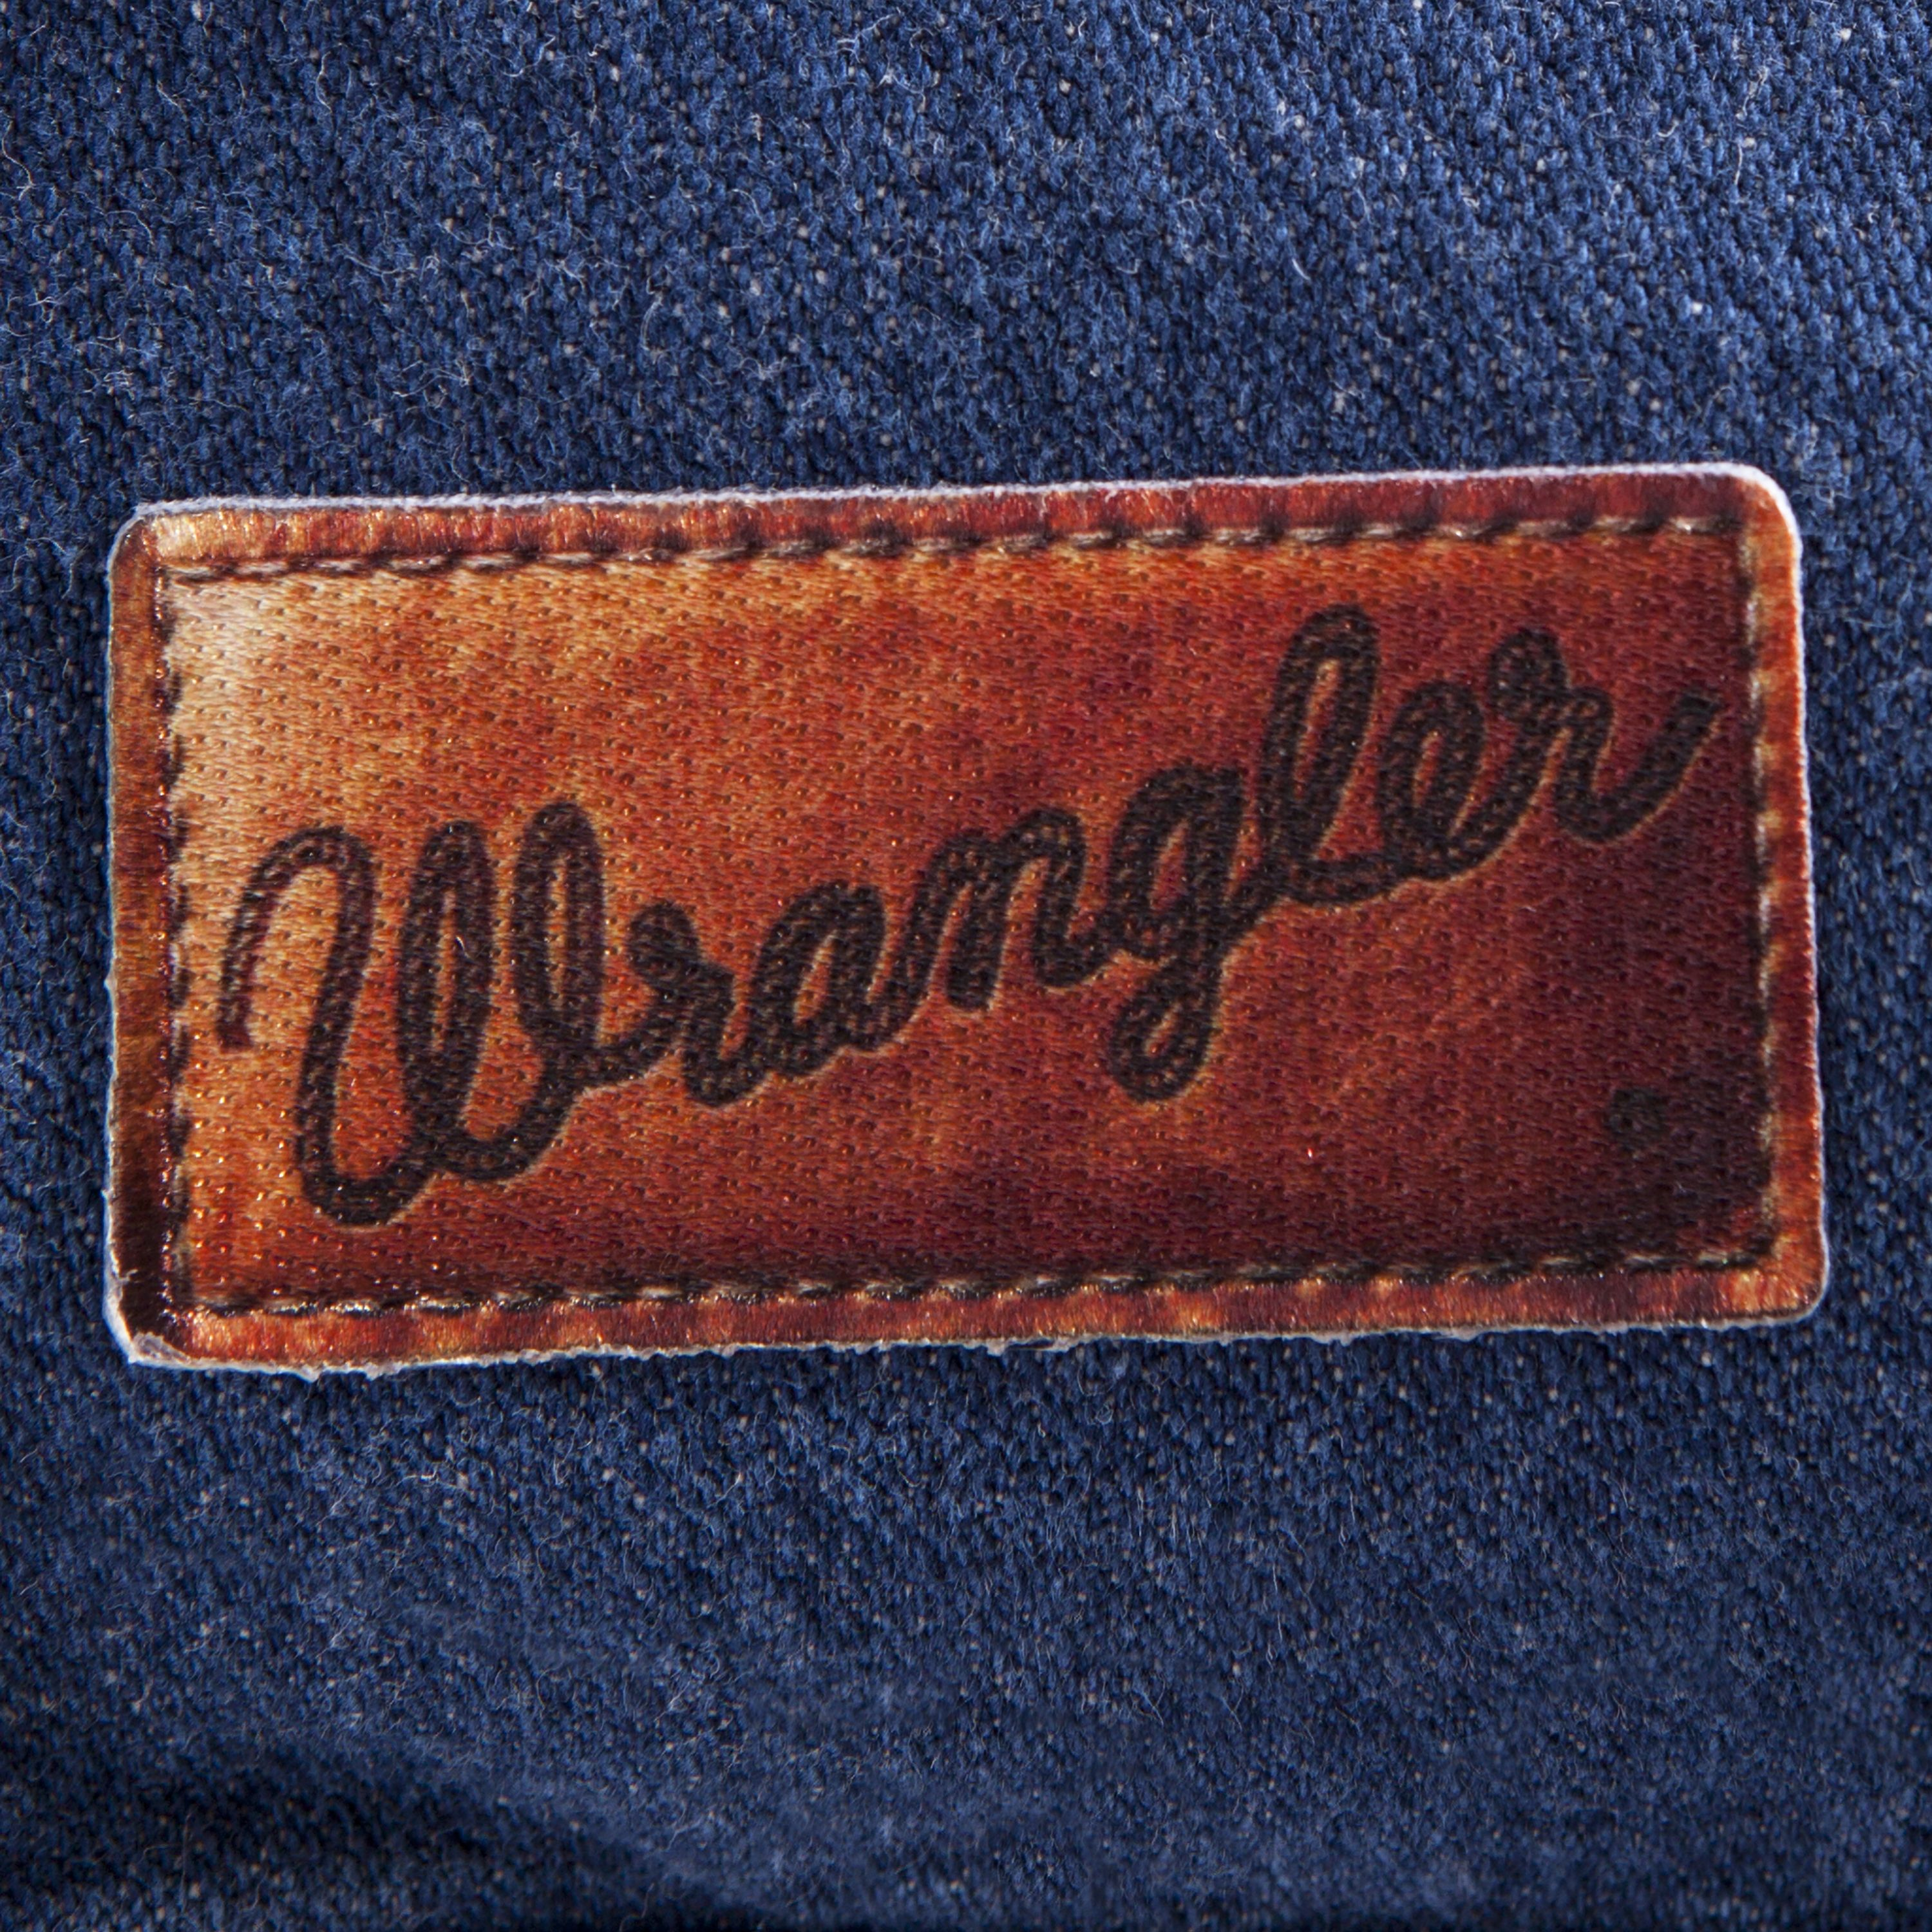 963eb2dc Wrangler Back Pocket Patch | Wrangler Pins and Patches in 2019 ...